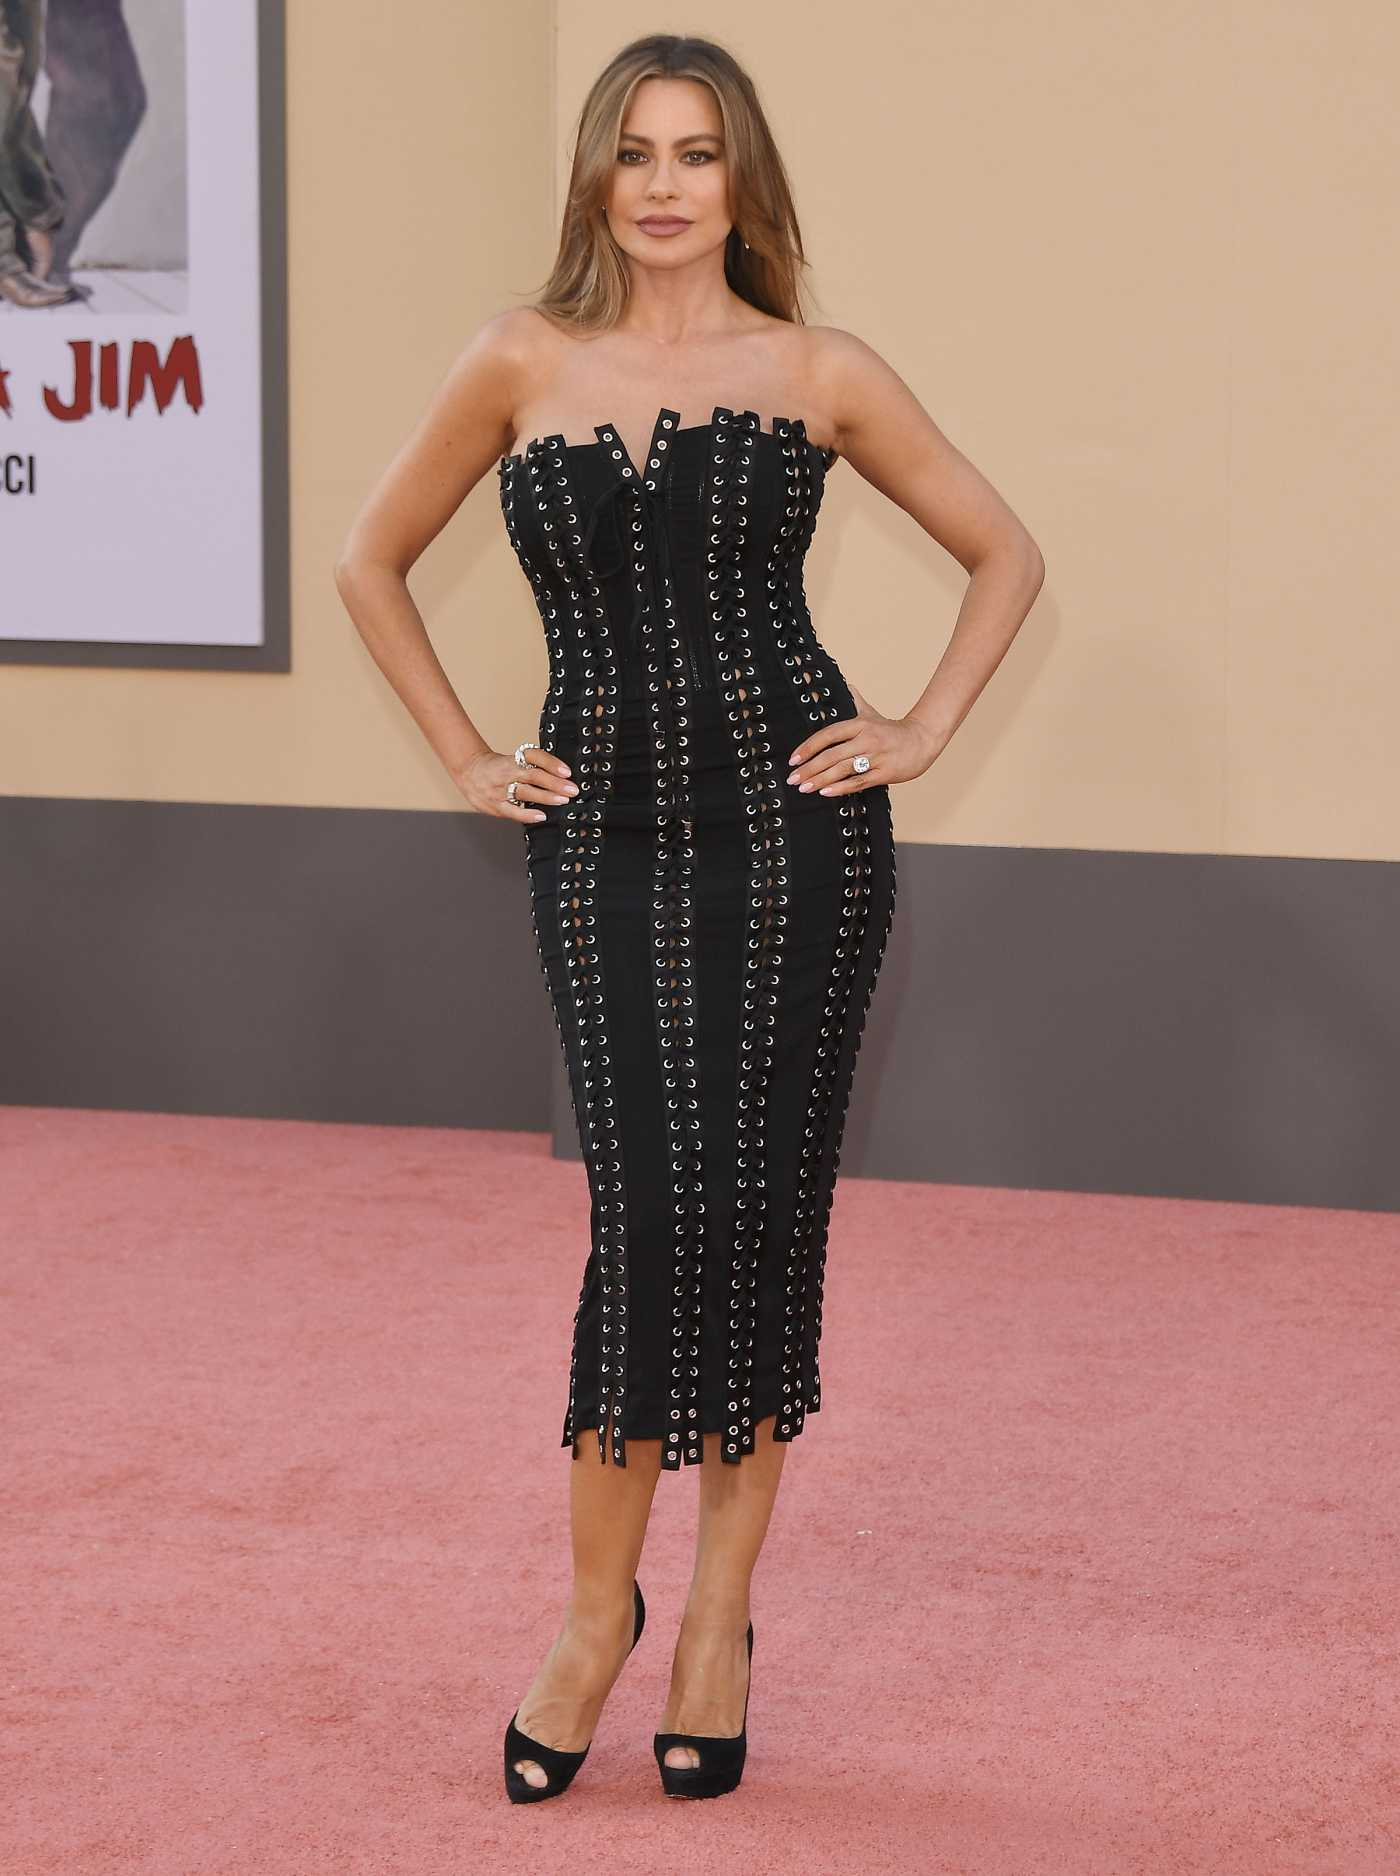 Sofia Vergara Attends Once Upon A Time...In Hollywood Premiere in Los Angeles 07/22/2019